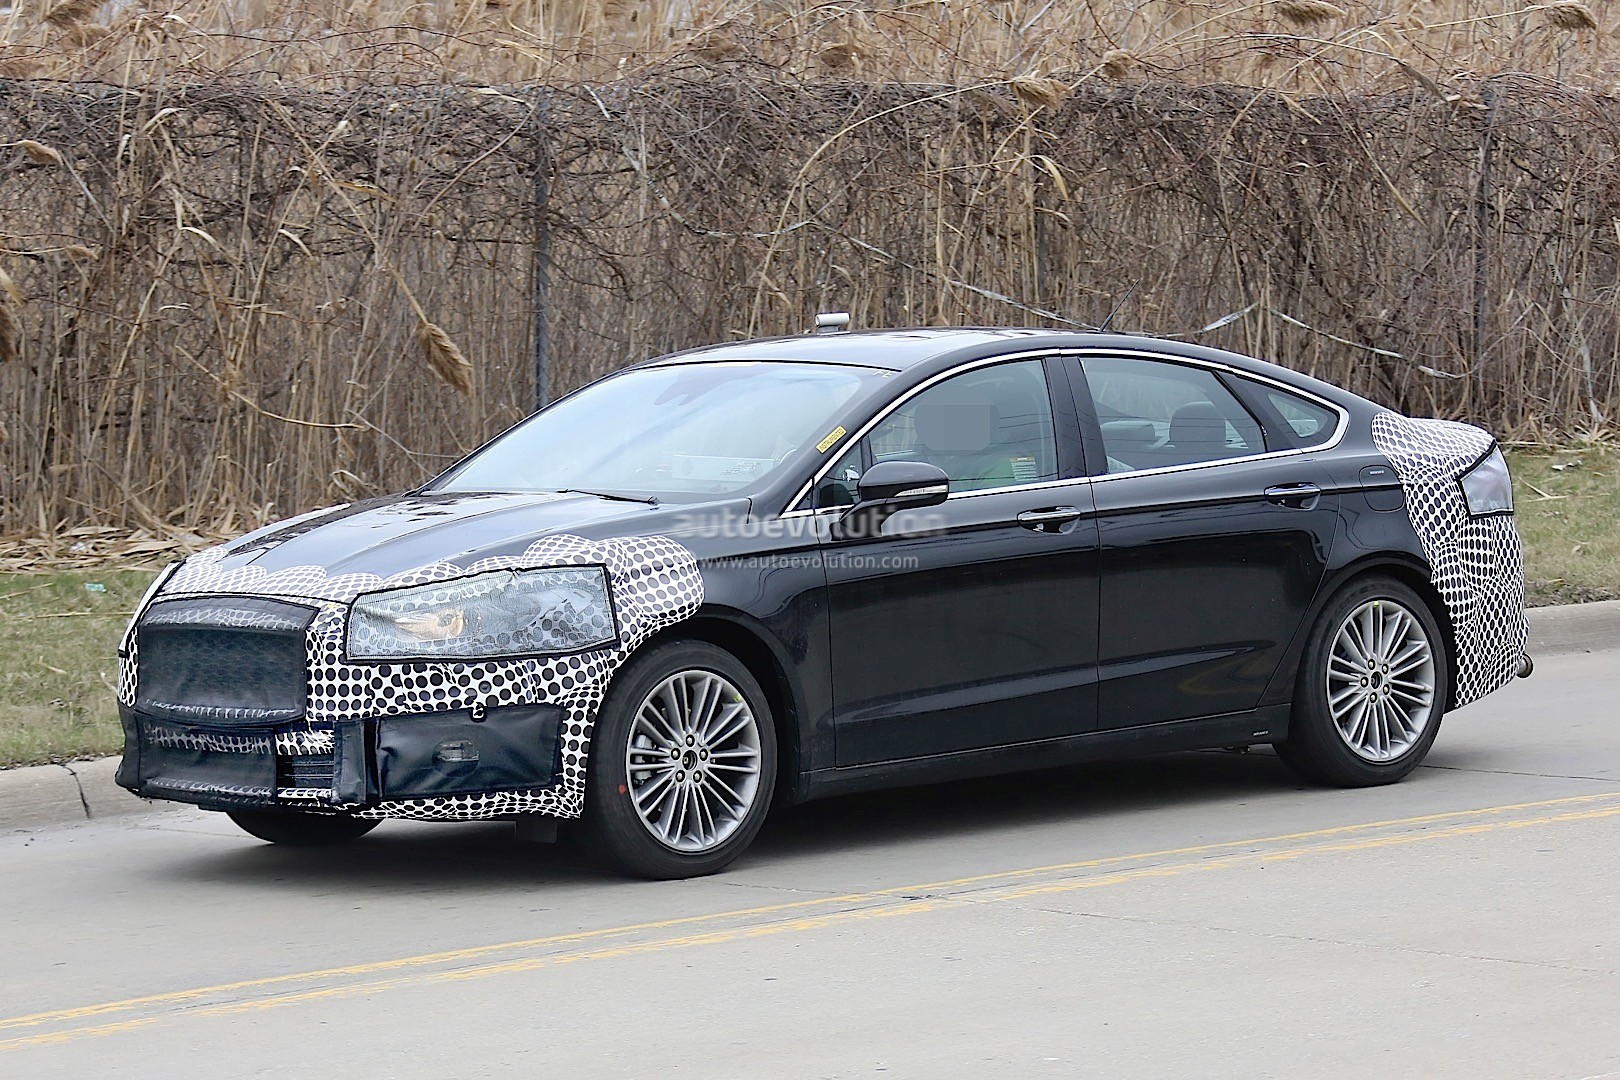 2017 ford fusion mondeo facelift spied autoevolution. Black Bedroom Furniture Sets. Home Design Ideas